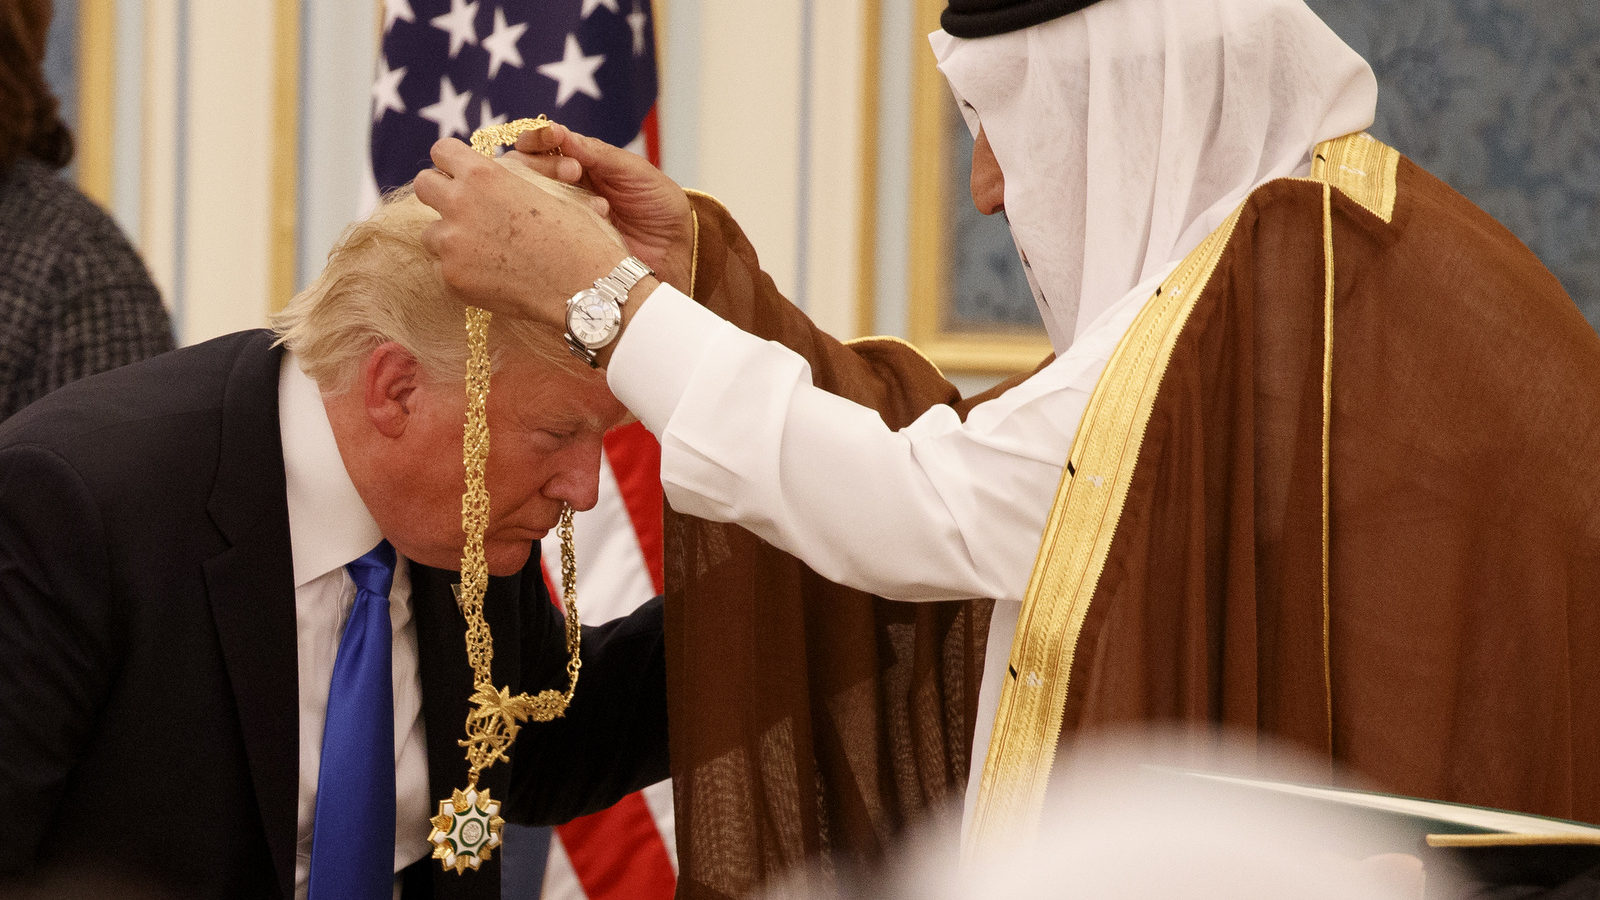 Saudi King Salman presents President Donald Trump with The Collar of Abdulaziz Al Saud Medal at the Royal Court Palace, Saturday, May 20, 2017, in Riyadh. (AP/Evan Vucci)